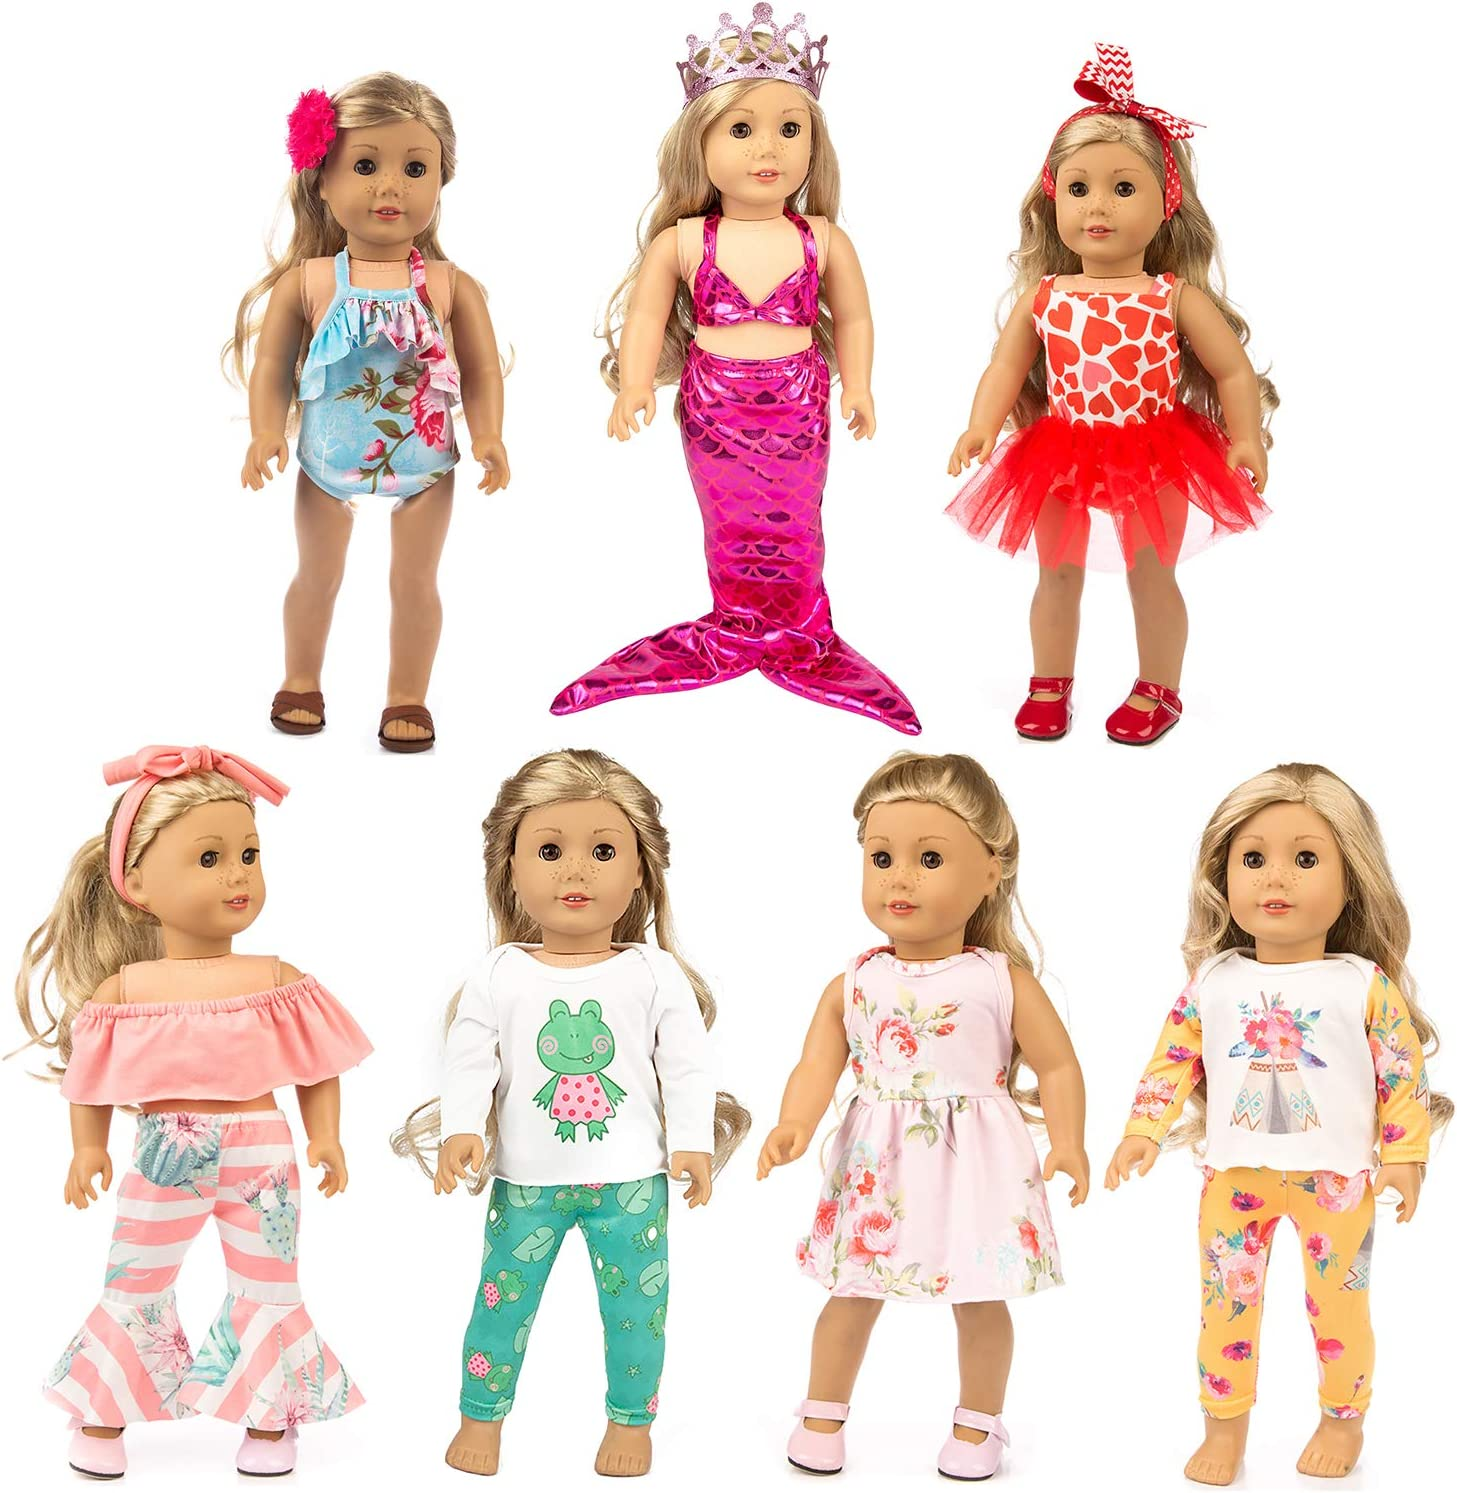 XFEYUE 7 Sets 18 inch Doll Clothes and Accessories for American 18 inch Girl Doll, Mermaid Costumes and Various Styles of Doll Clothes for Child Birthday Gifts